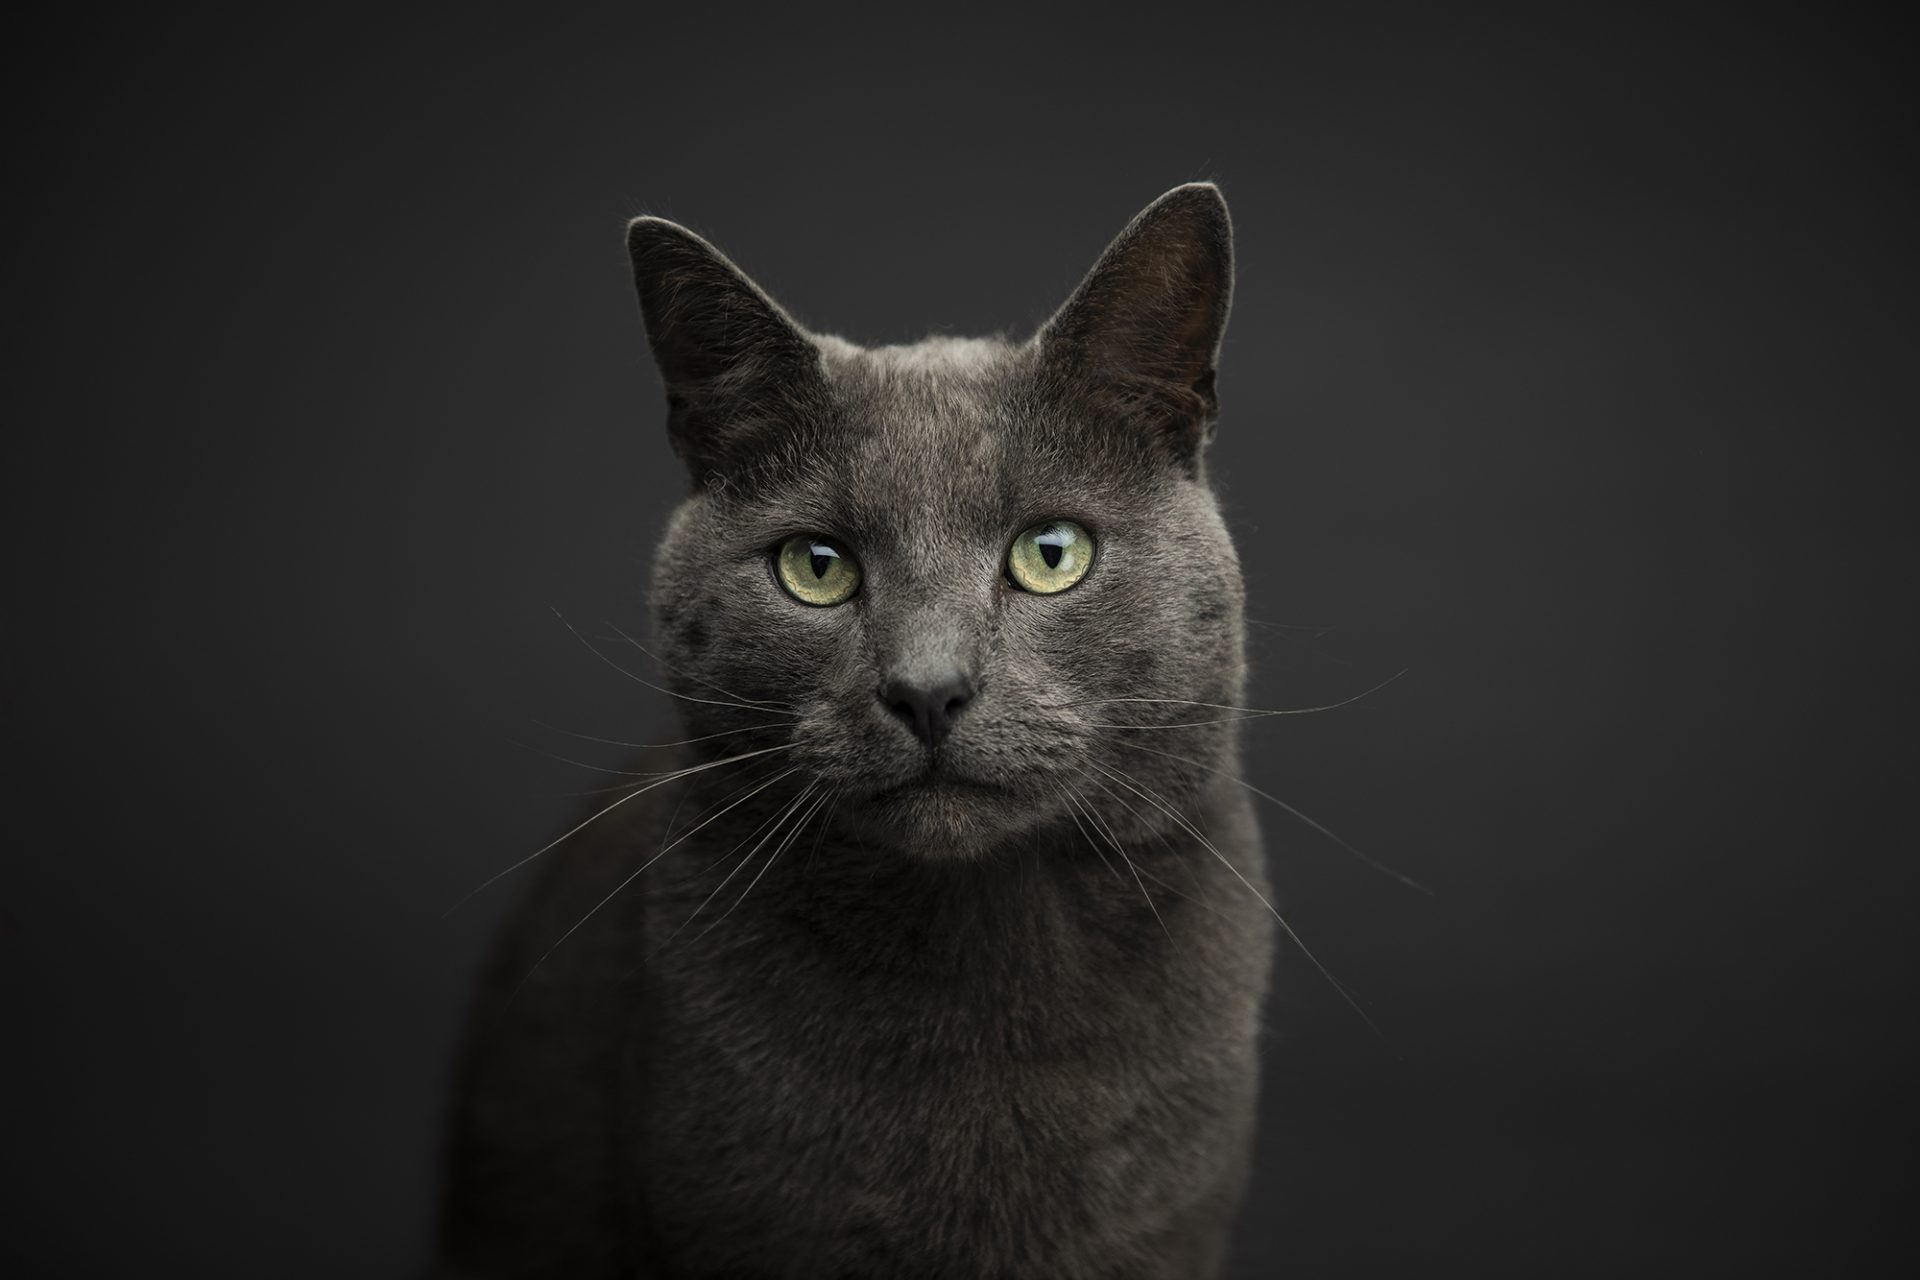 Pet cat photography